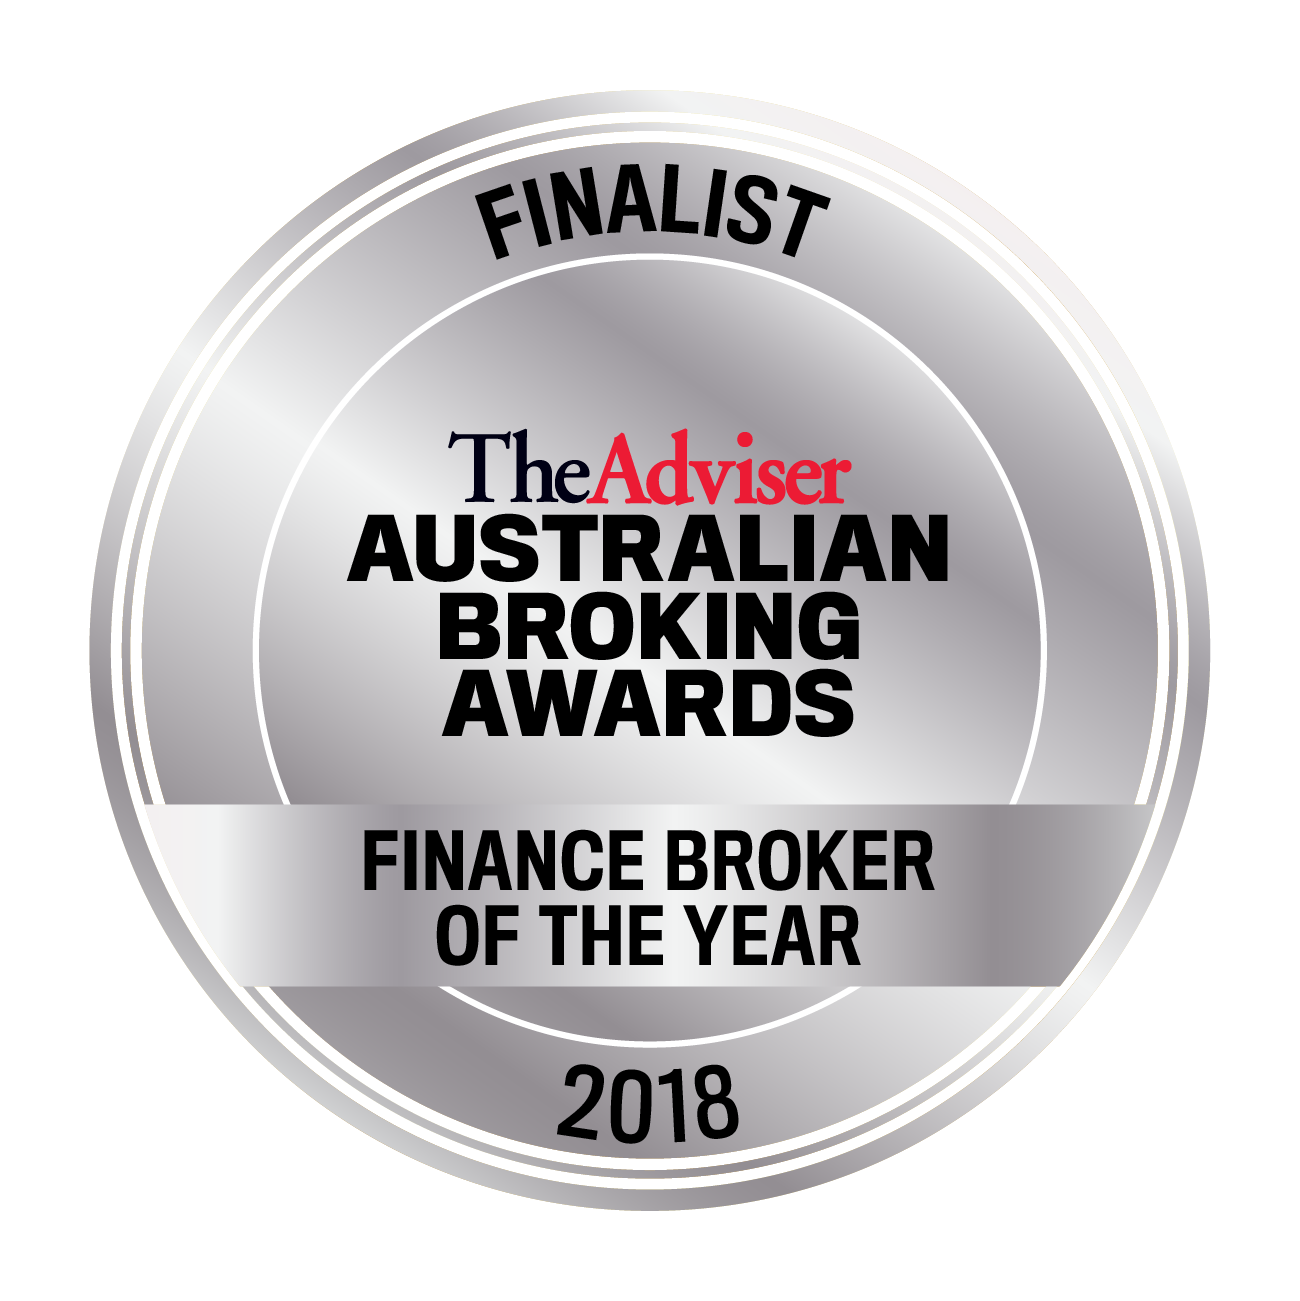 Finalists Finance Broker of the Year